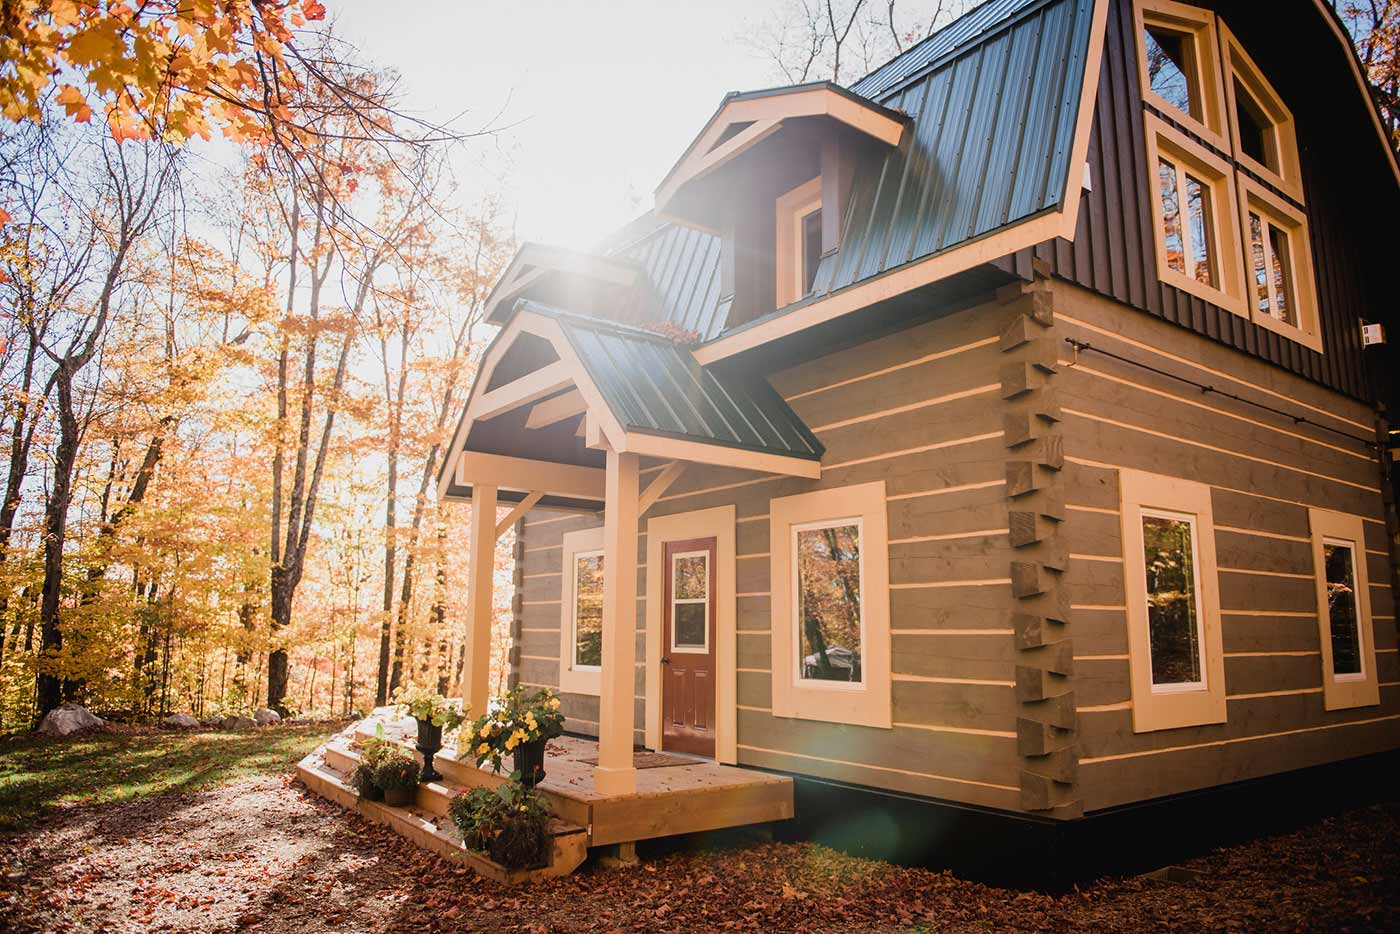 Beautiful log cabin surrounded by fall foliage in the woods